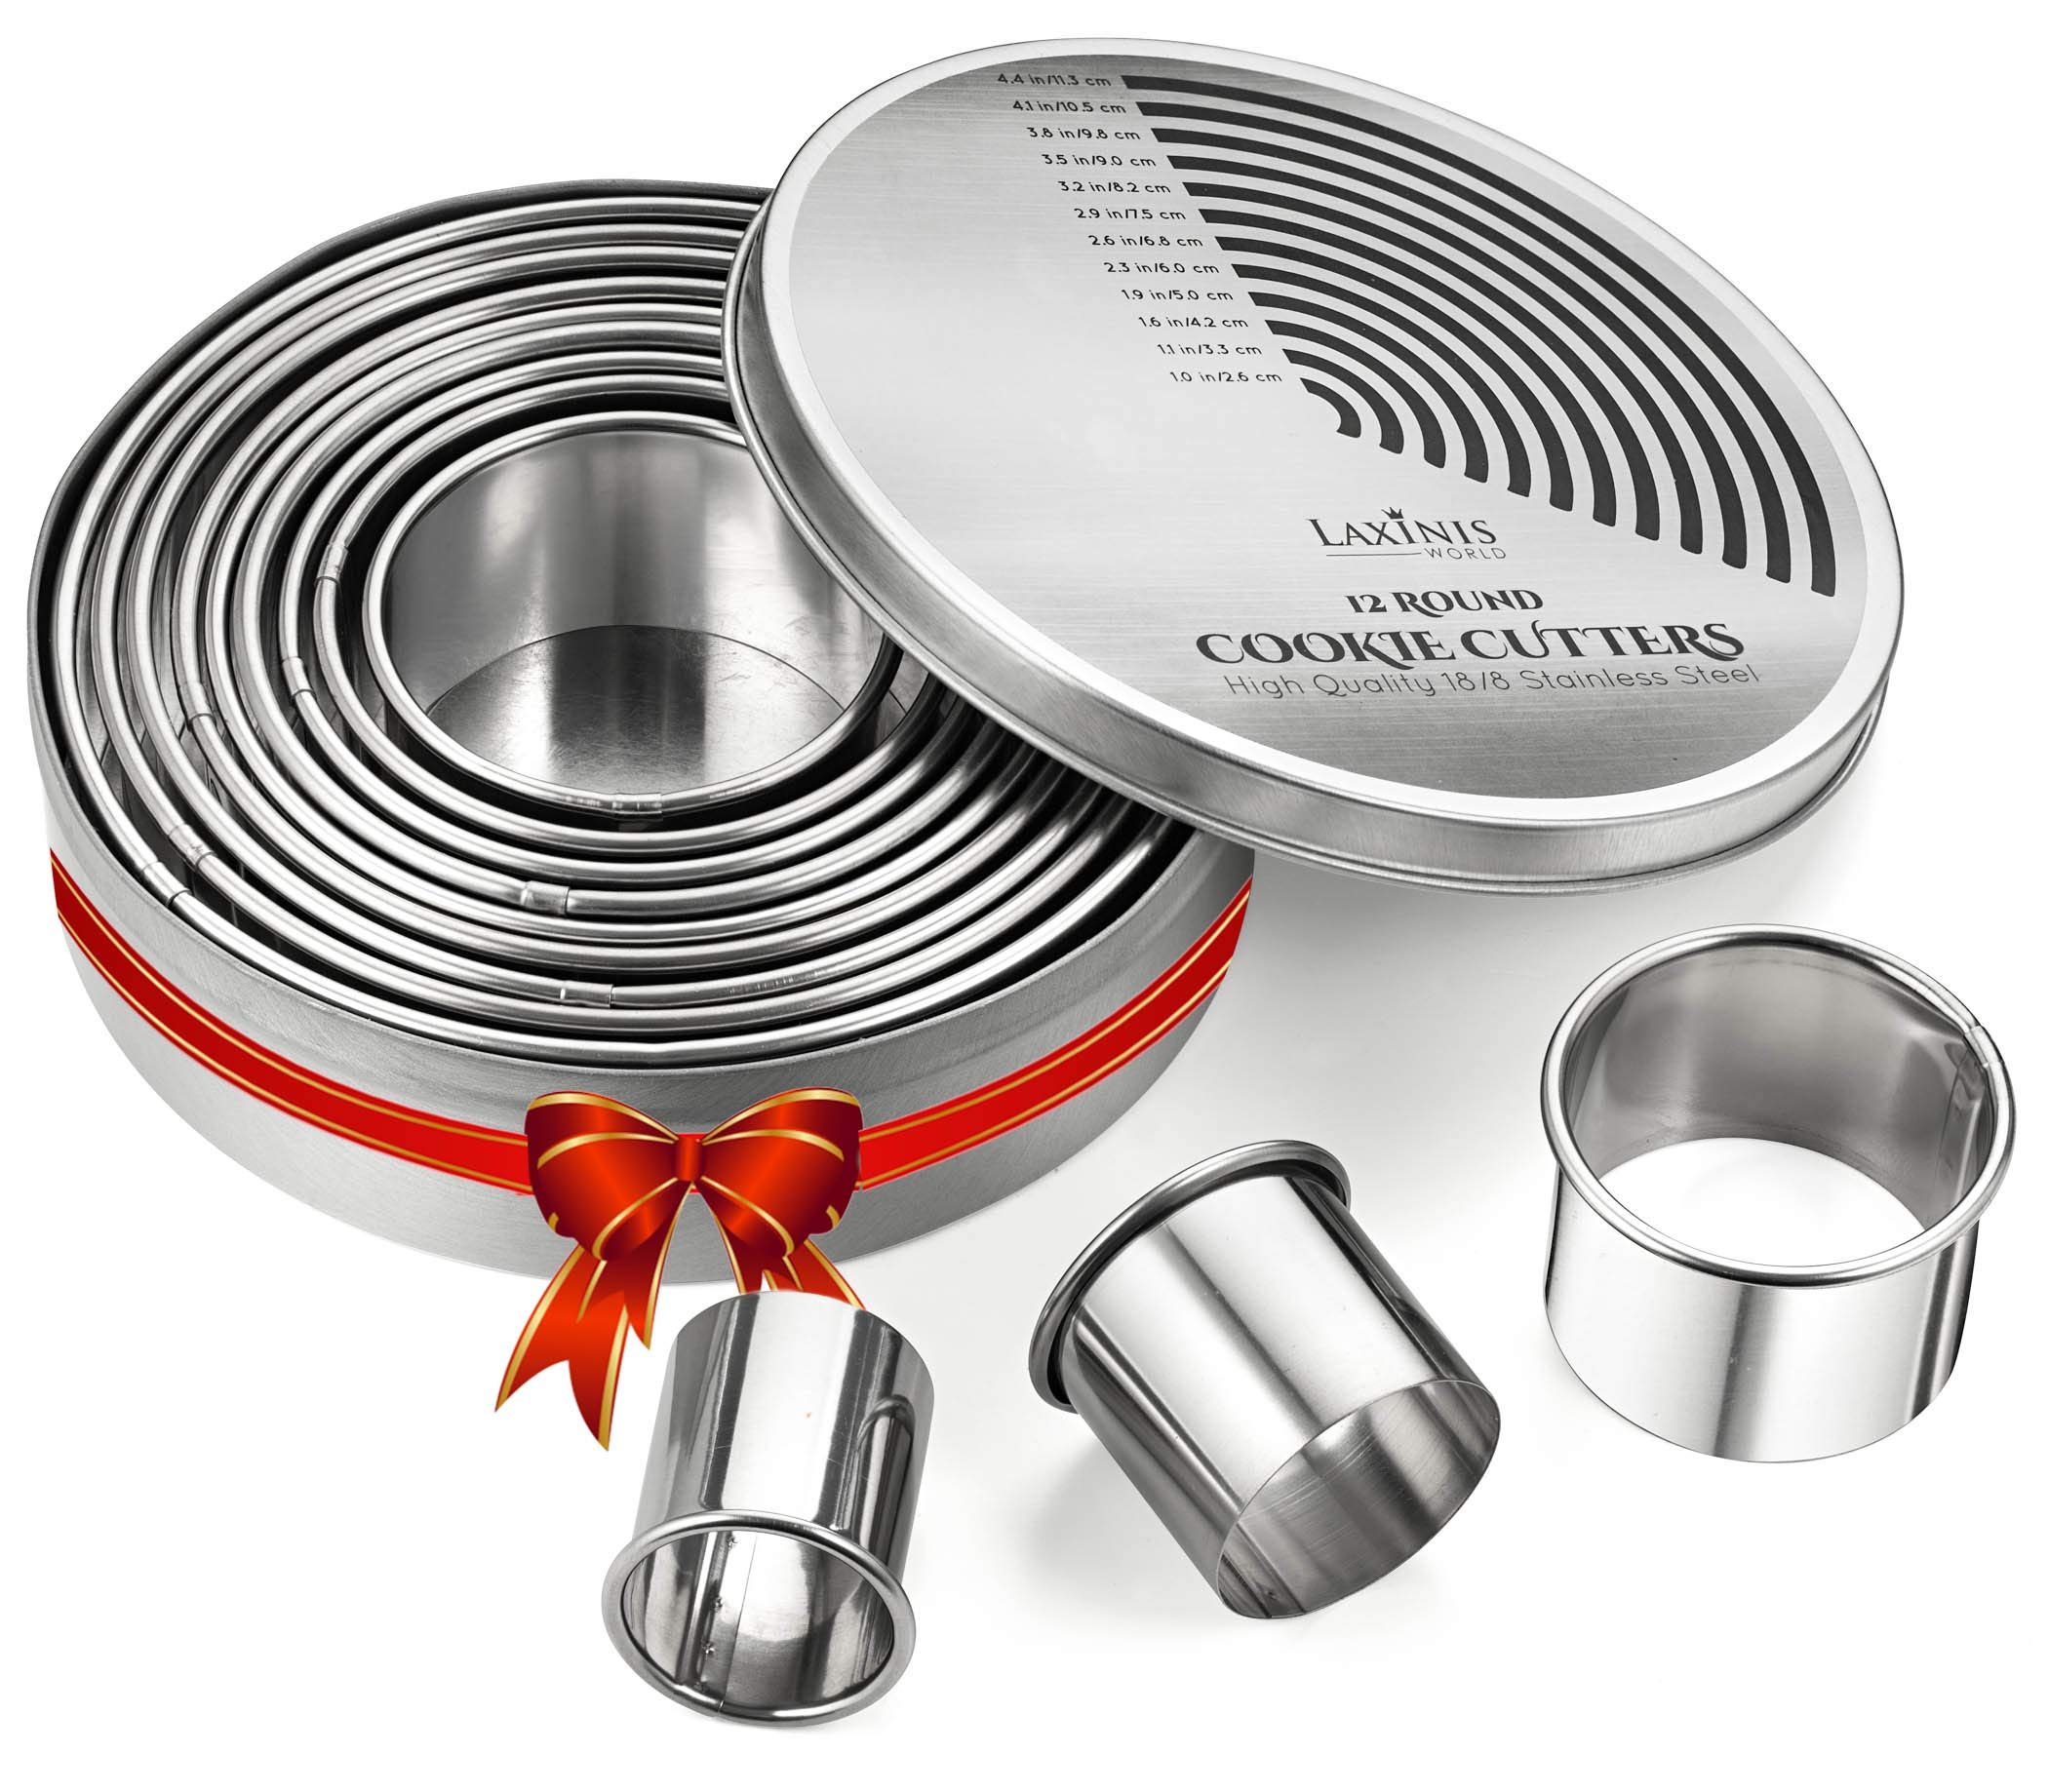 Round Cookie Biscuit Cutter Set, 12 Graduated Circle Pastry Cutters, Heavy Duty Commercial Grade 18/8 304 Stainless Steel Cookie And Dough Cutters